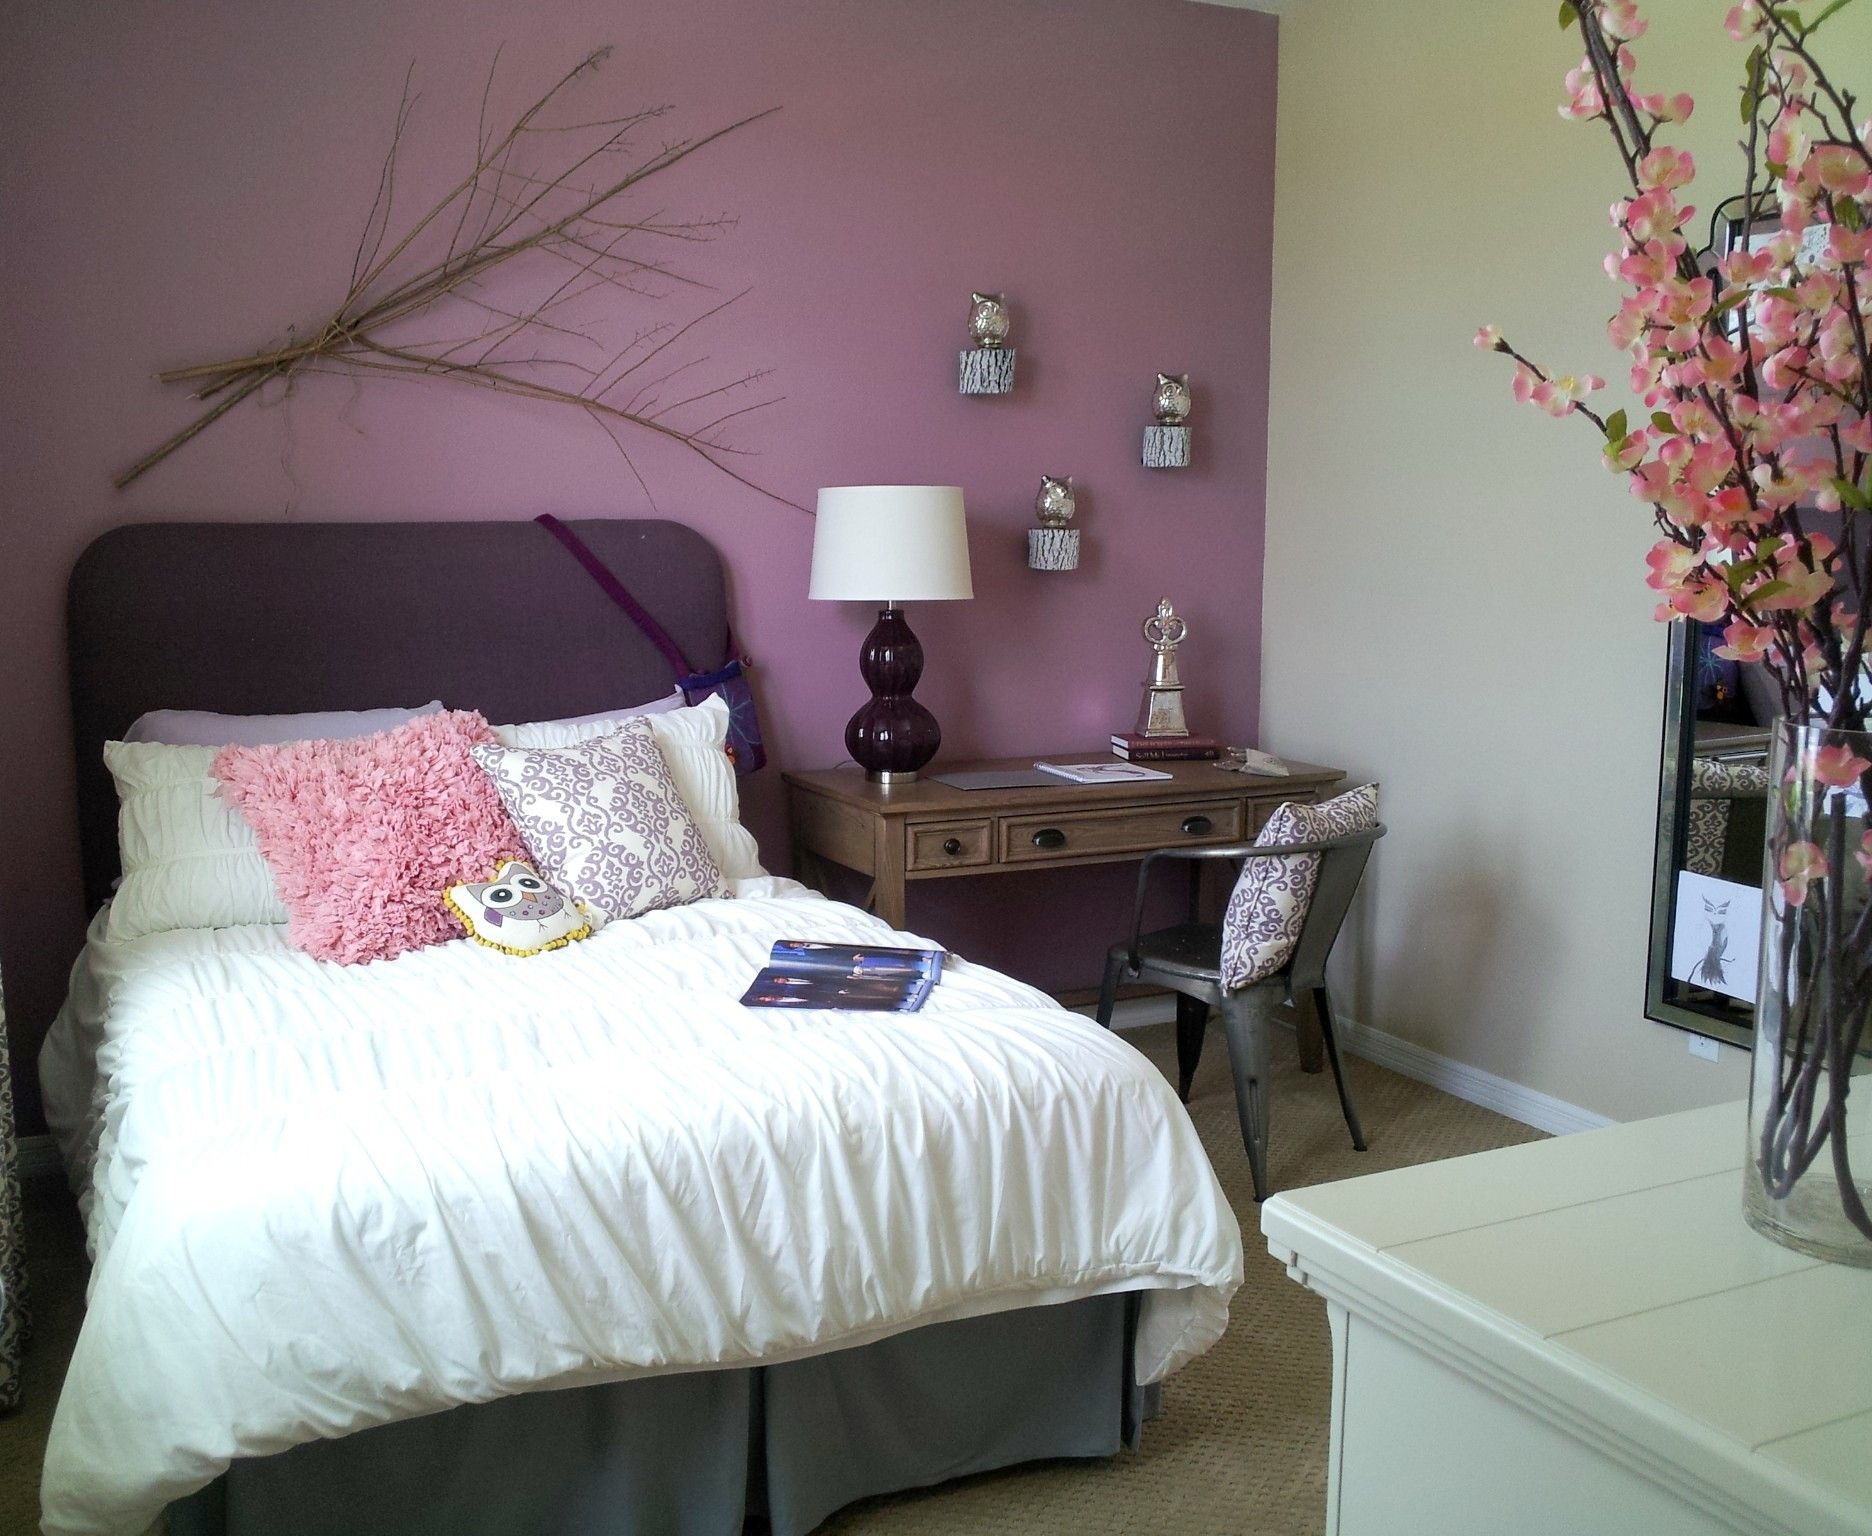 Sherwin Williams Thistle wall color